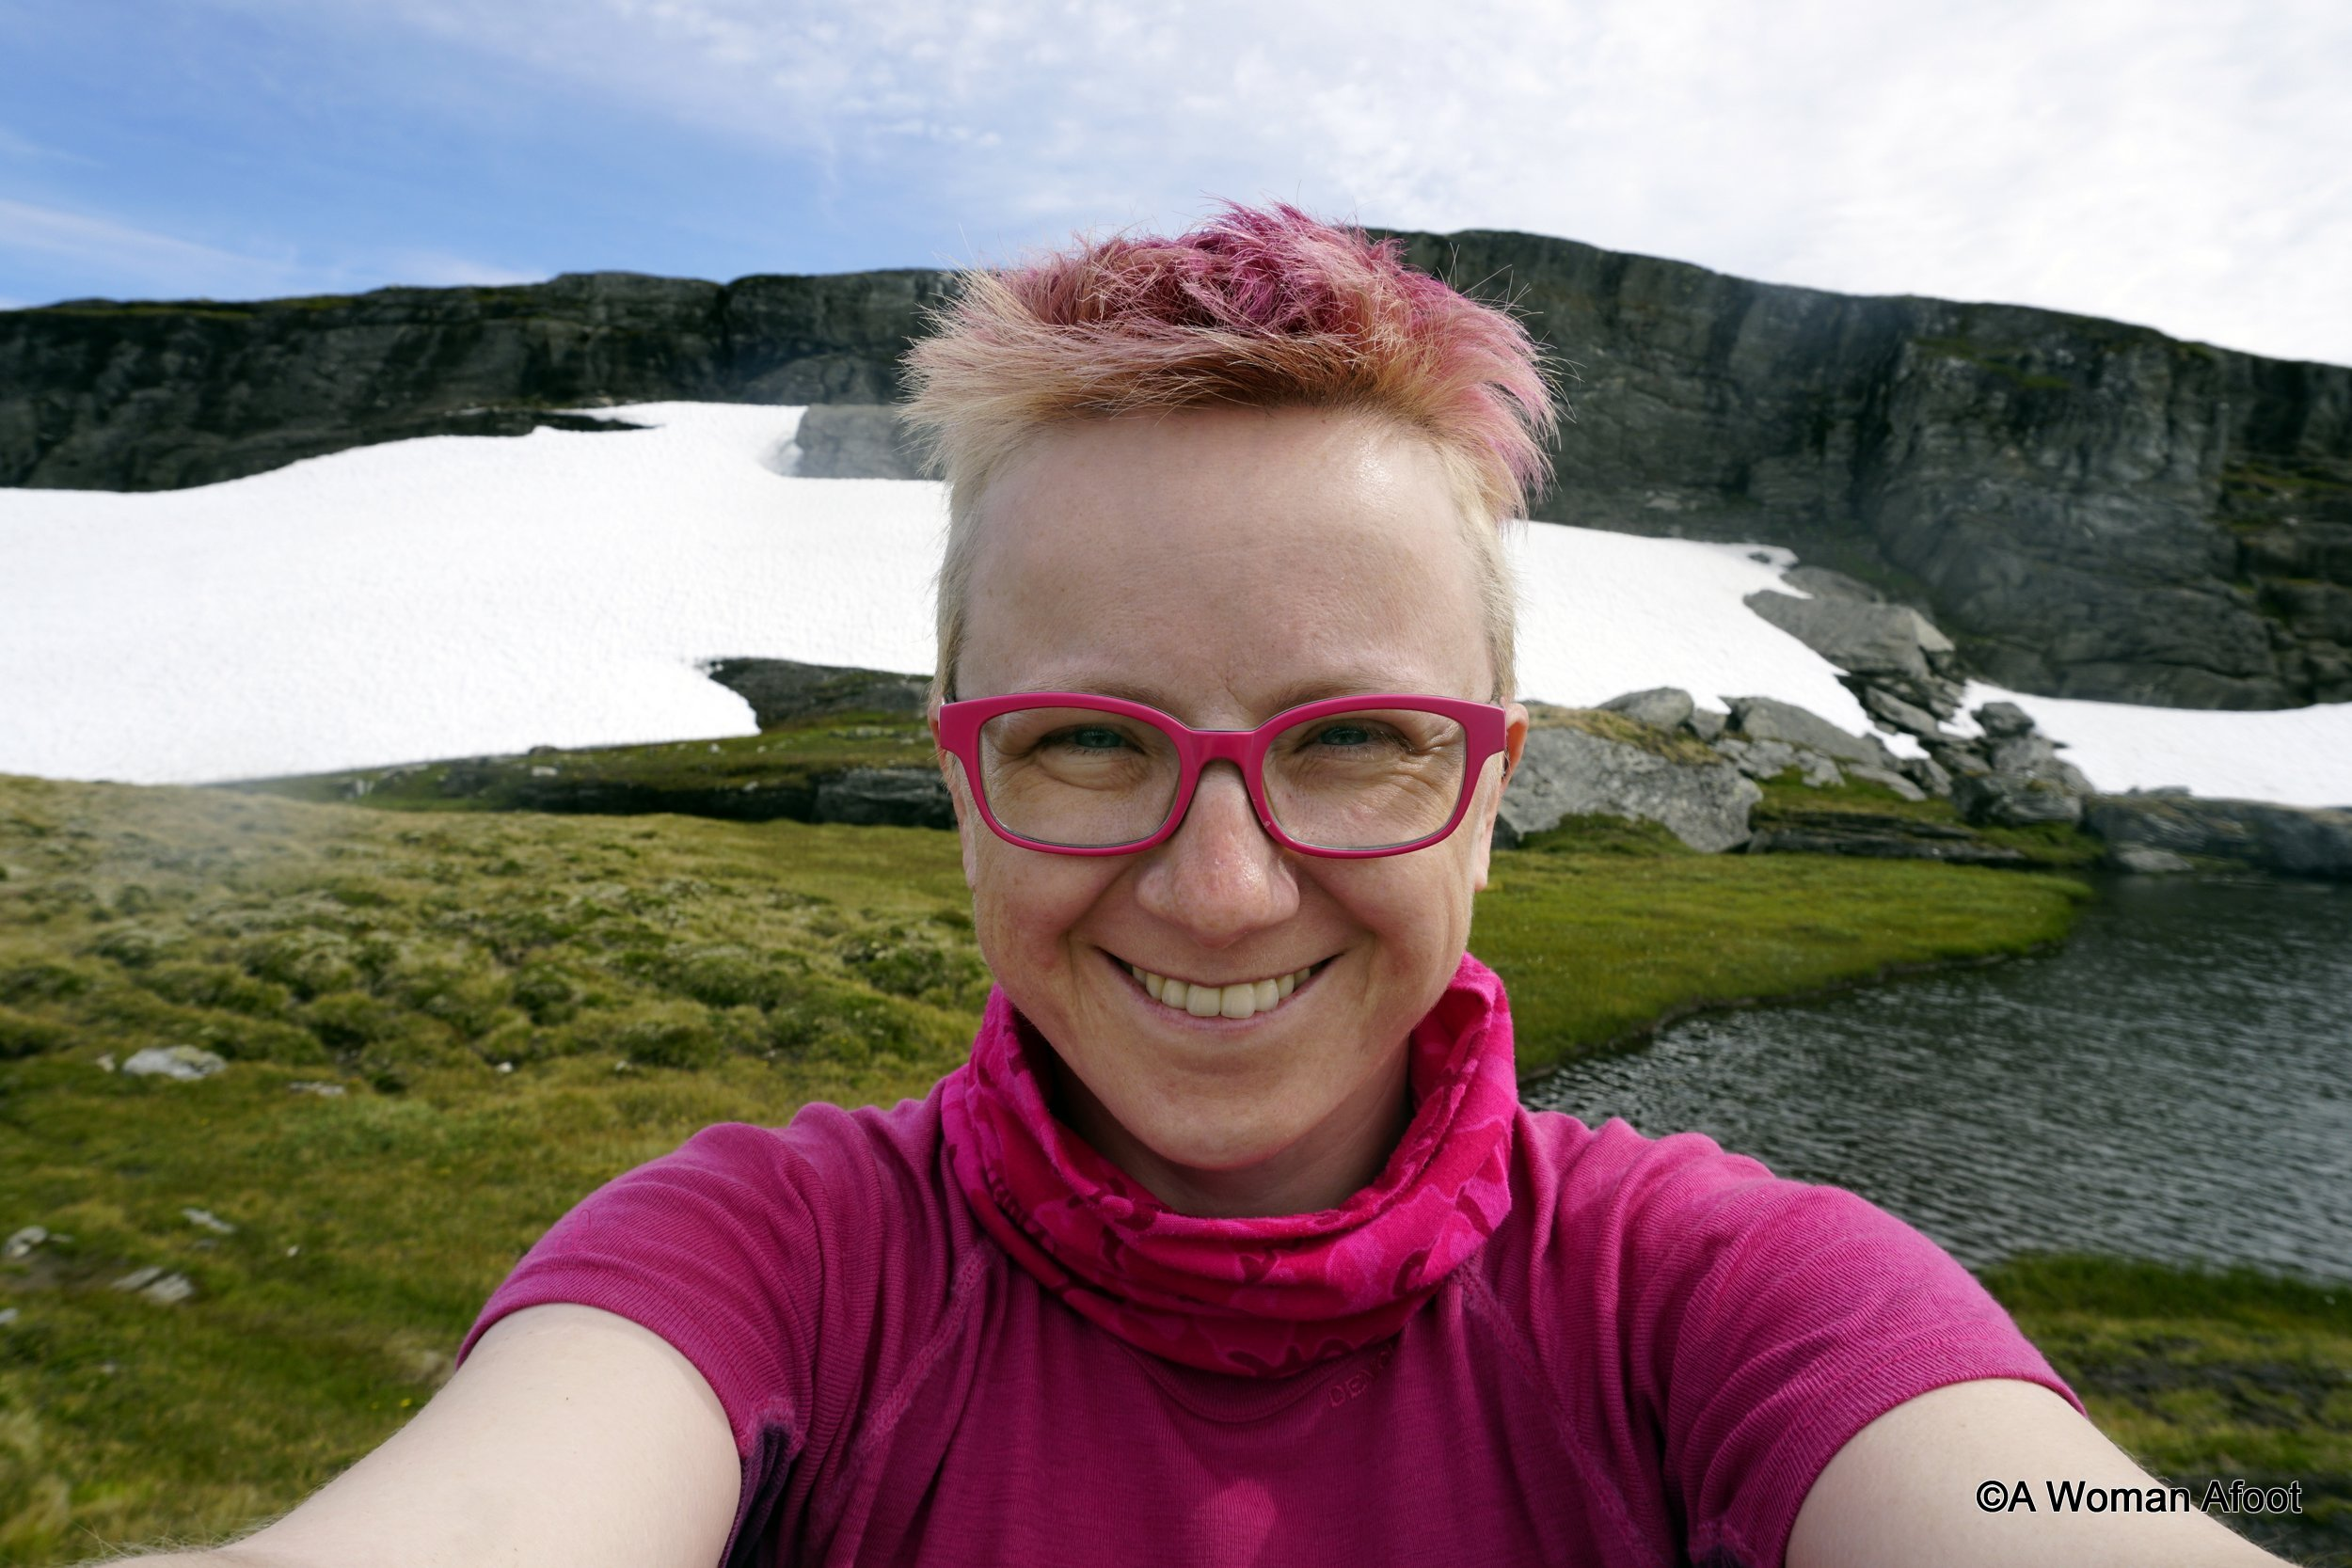 Do you wonder sometimes why would anyone go hiking alone? I share a few thoughts on what solo hiking does to me and… why I take so many selfies @ awomanafoot.com   Female solo hikers   Why to hike alone?   Benefits of solo hiking   Women hiking alone   self-acceptance   anxiety   building confidence and self-esteem   #hiking #solo #FemaleHikers #BodyAcceptance #HikingInspiration #Inspiration #selfies #photography  